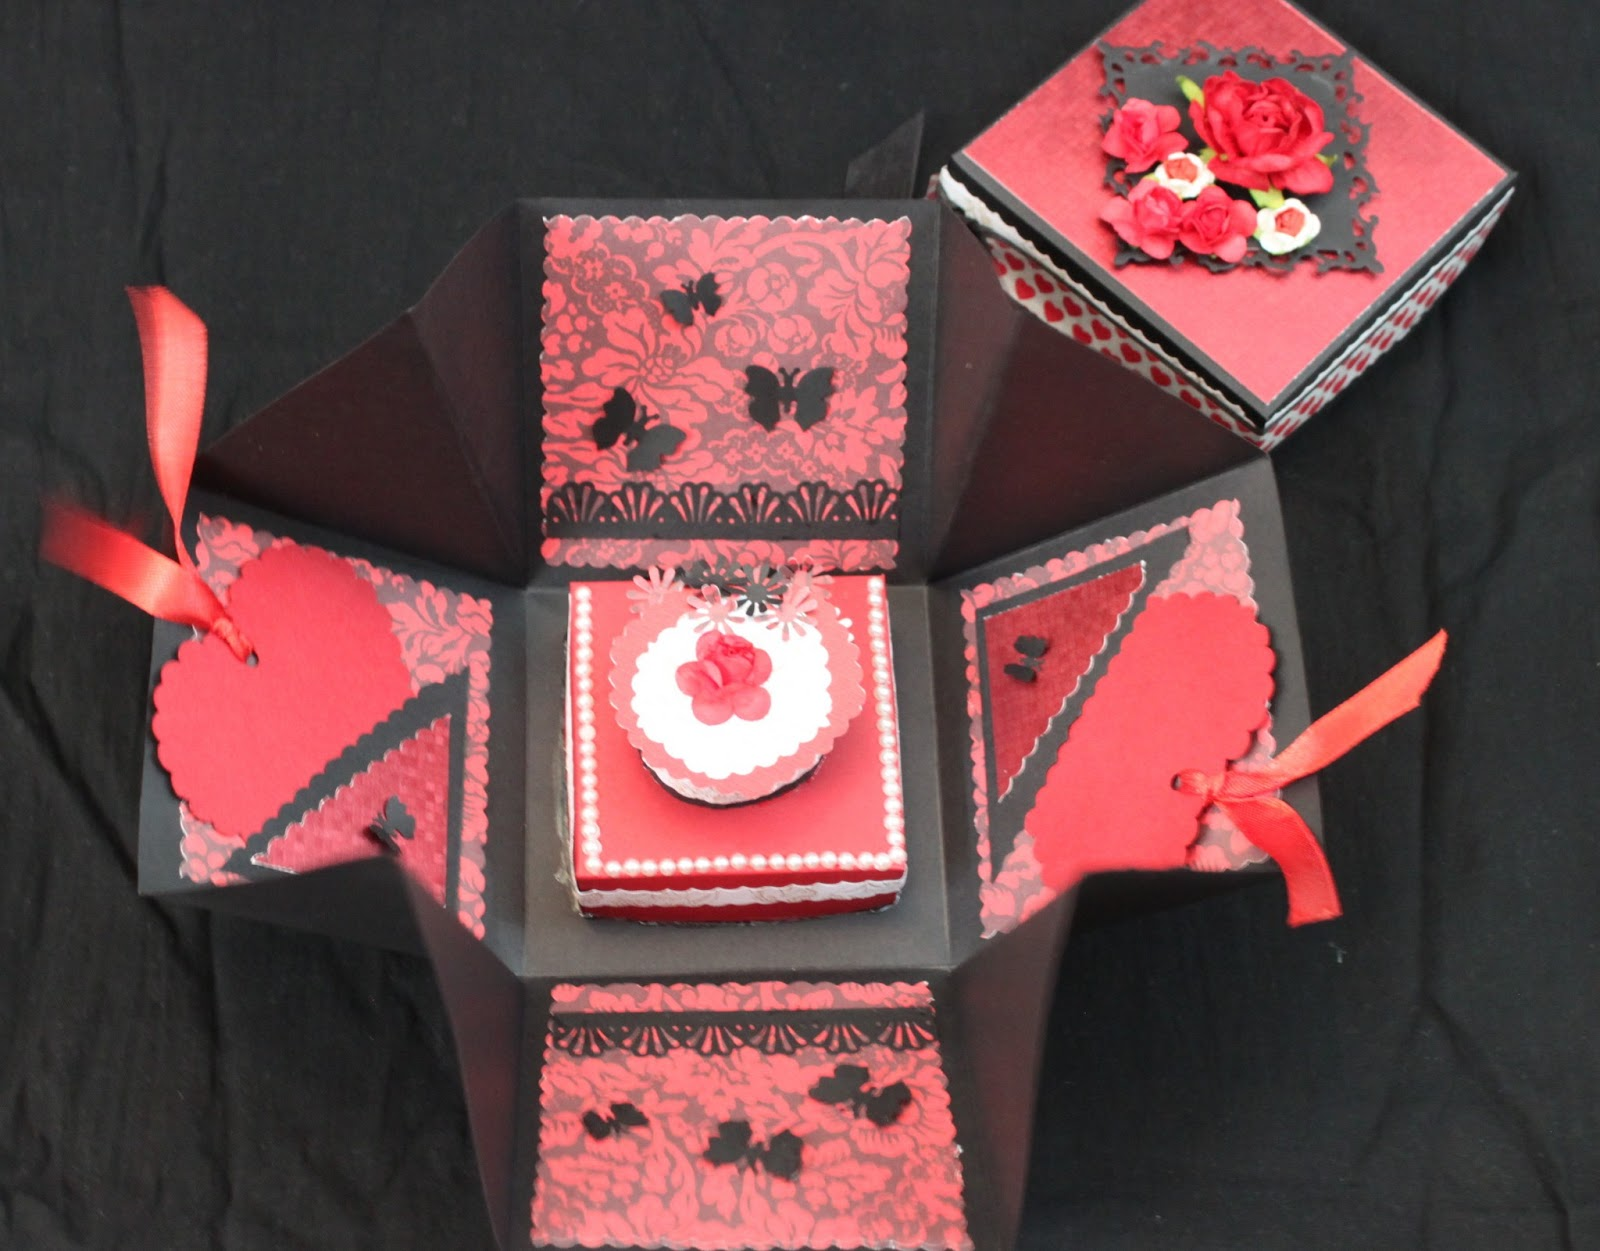 Crafted Creations Explosion Box Love Theme